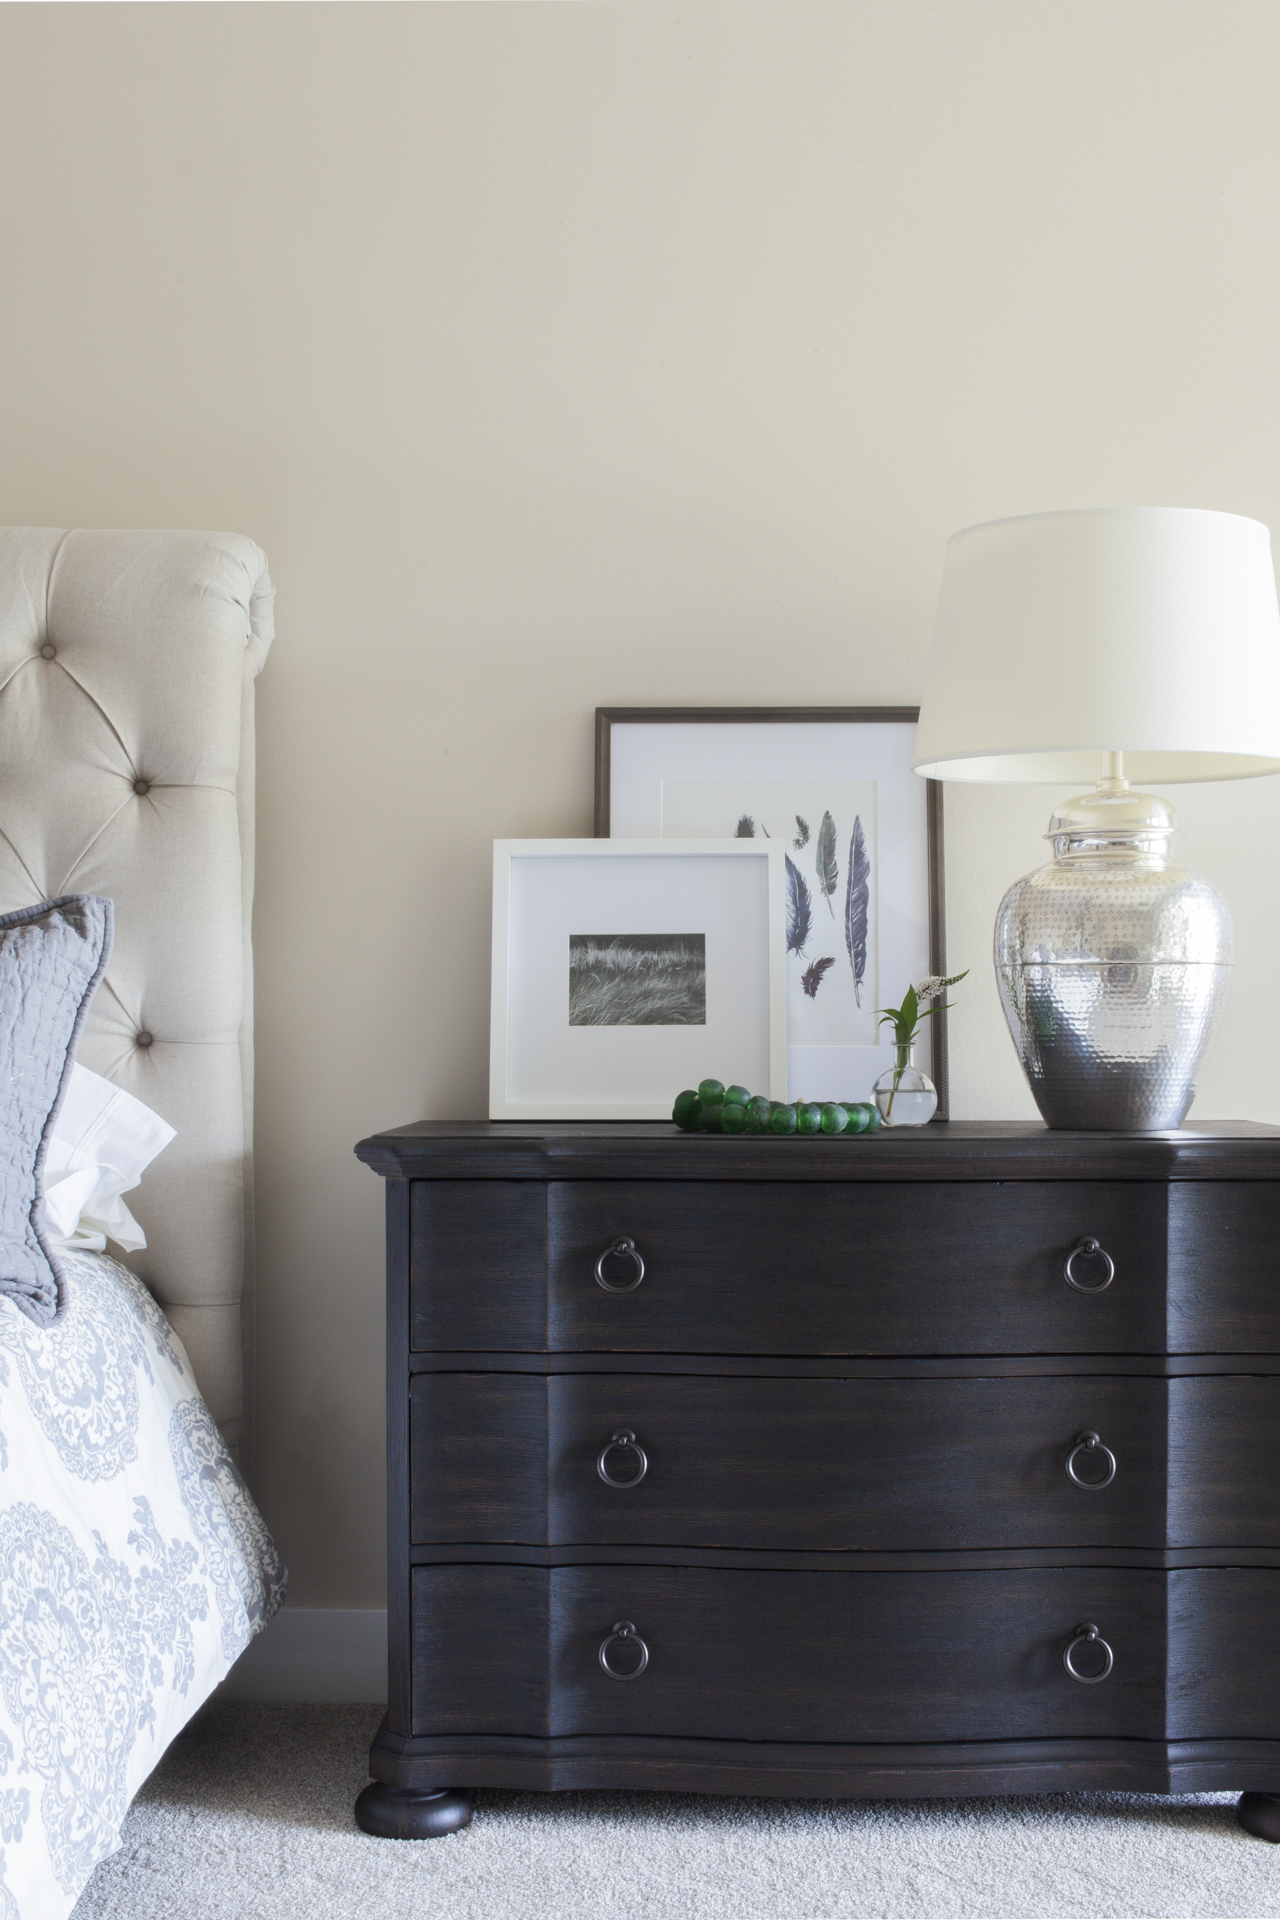 before-and-after-home-reveal-scout-and-nimble-lake-view-luxe-country-interior-design-bedroom-nightstand-bead-styling-99.jpg